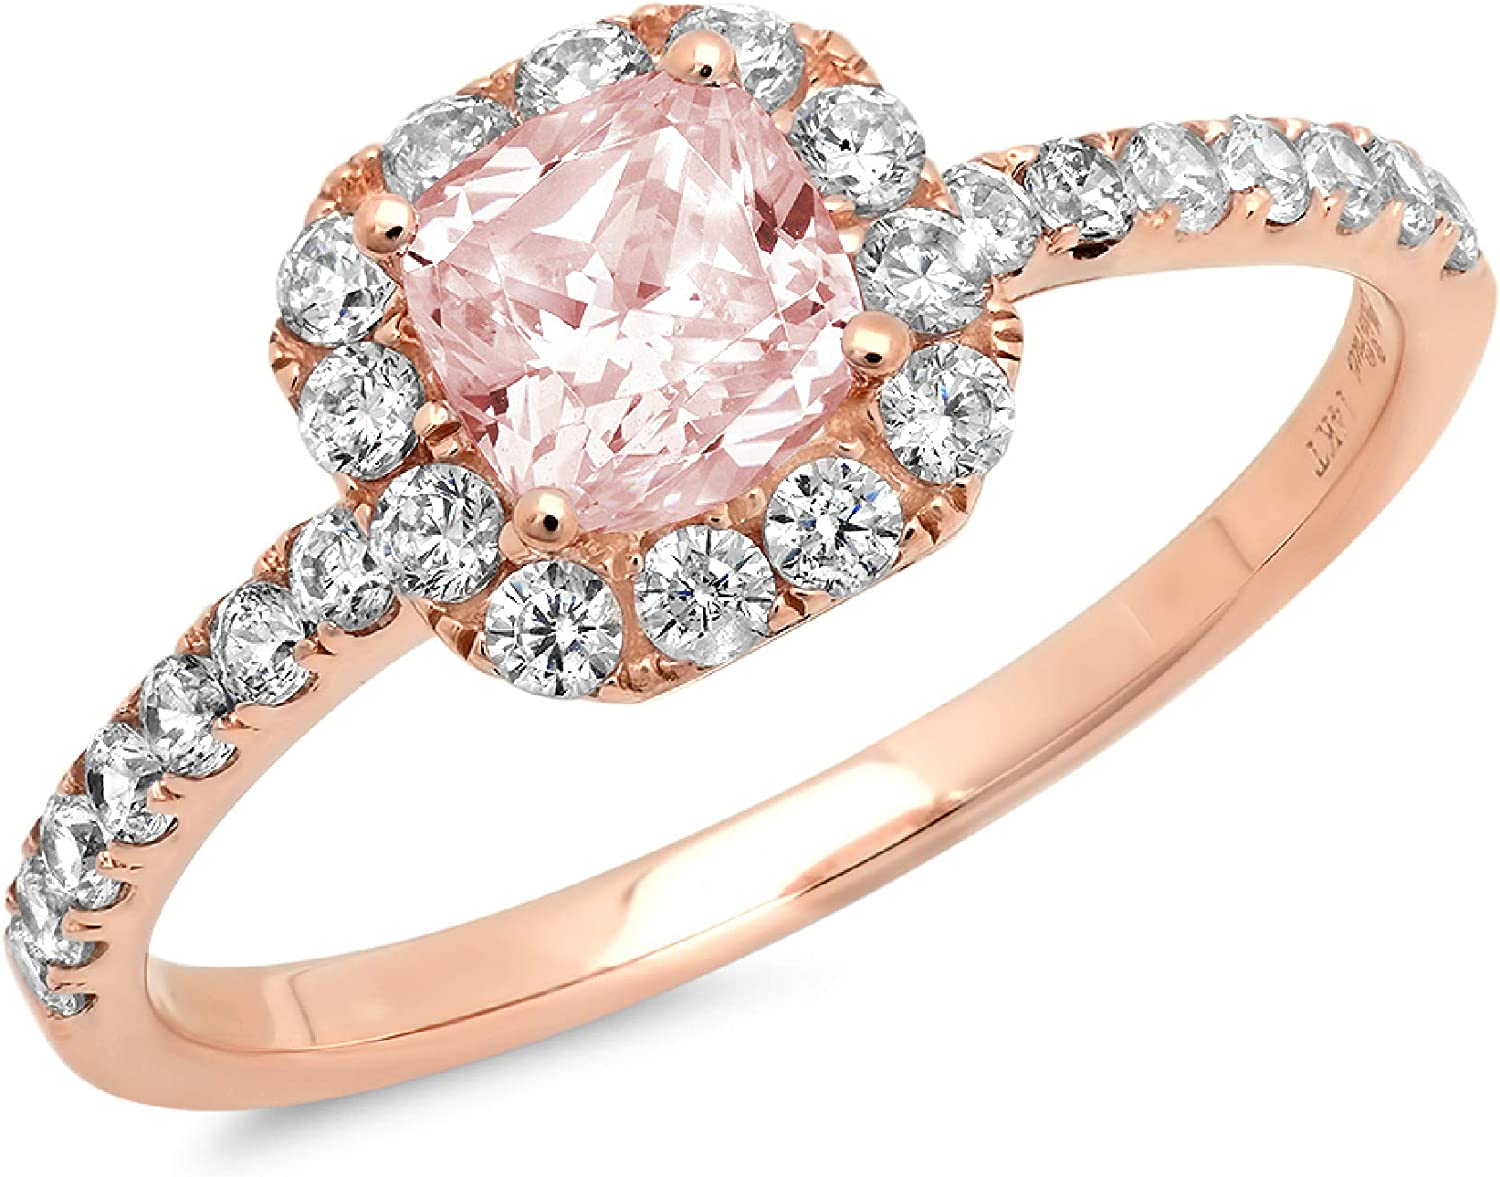 1.37ct Brilliant Princess Cut Solitaire with accent Pink Simulated Diamond CZ VVS1 Designer Modern Statement Ring Real Solid 14k Rose Gold Clara Pucci